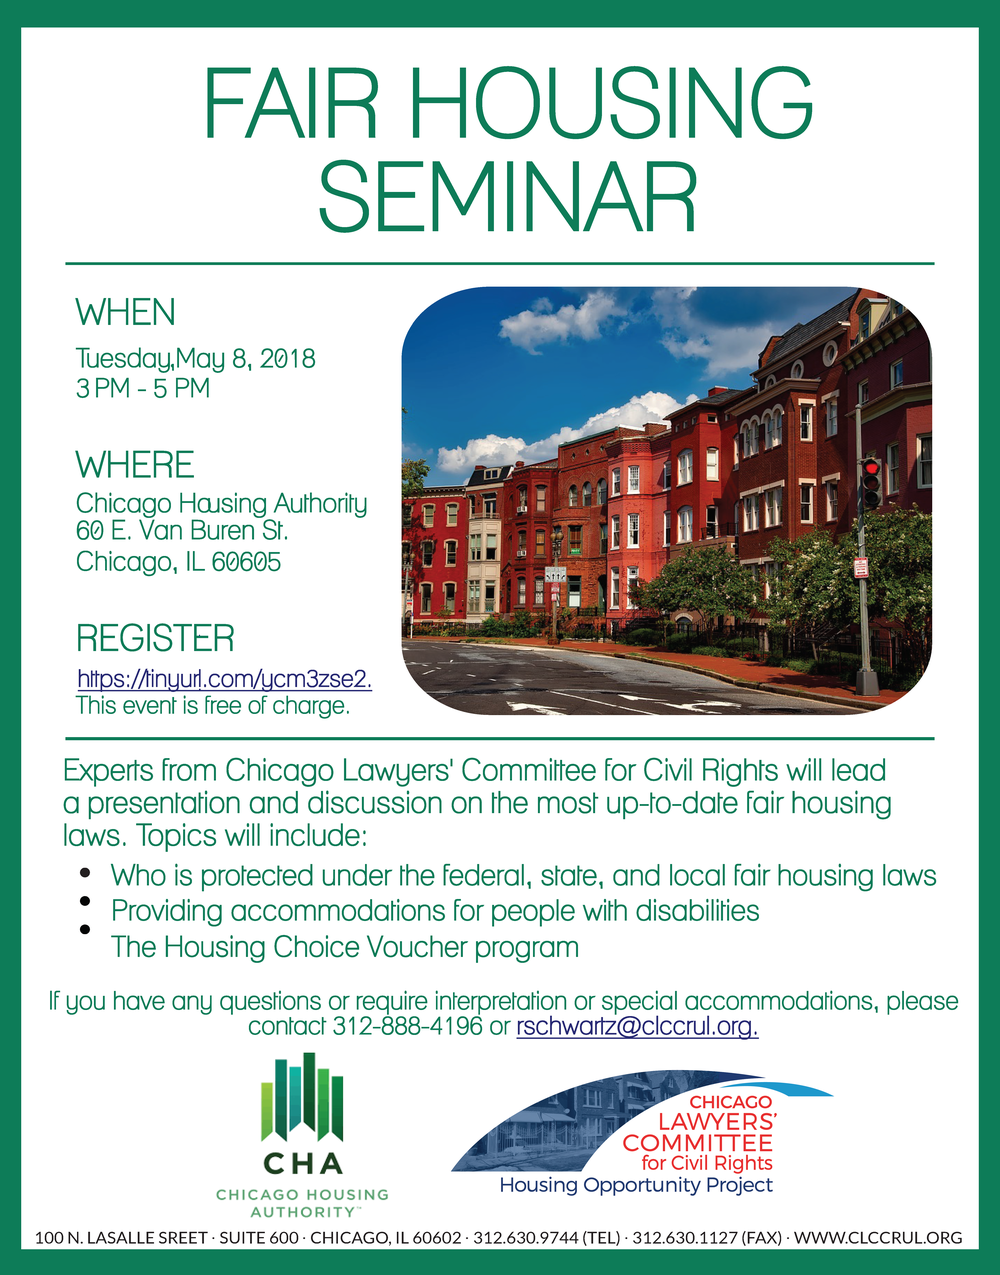 CHA Fair Housing Seminar 5.8.2018.png